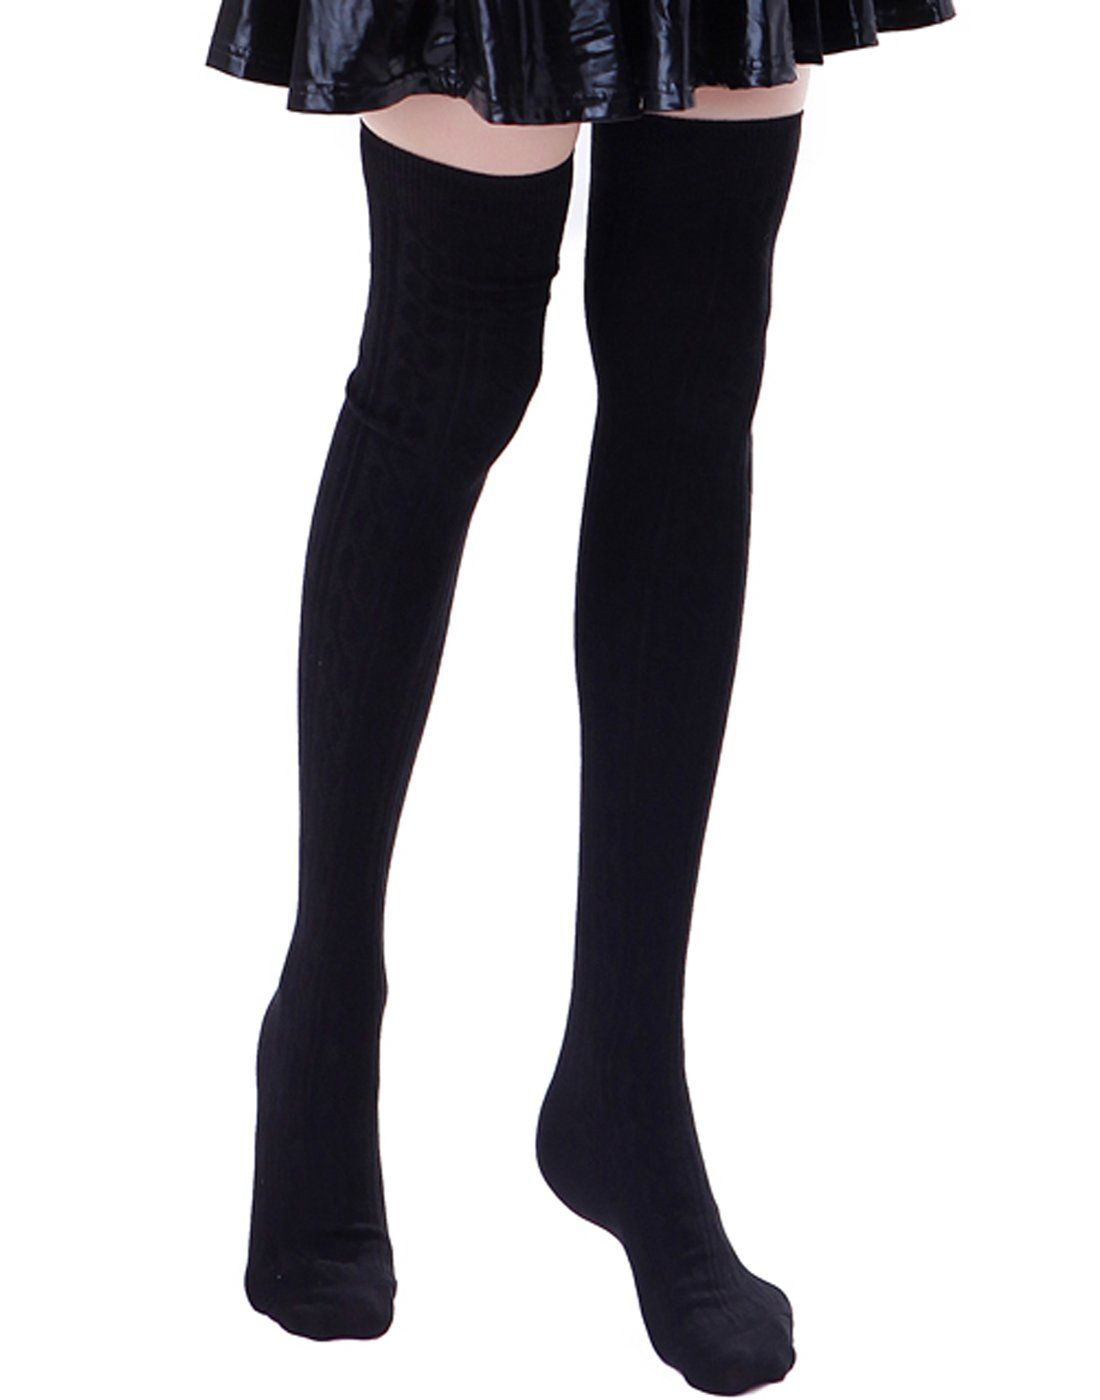 345e0ff8a HDE Womens Opaque Solid Color Cable Knit Over the Knee Thigh High Stocking  Socks